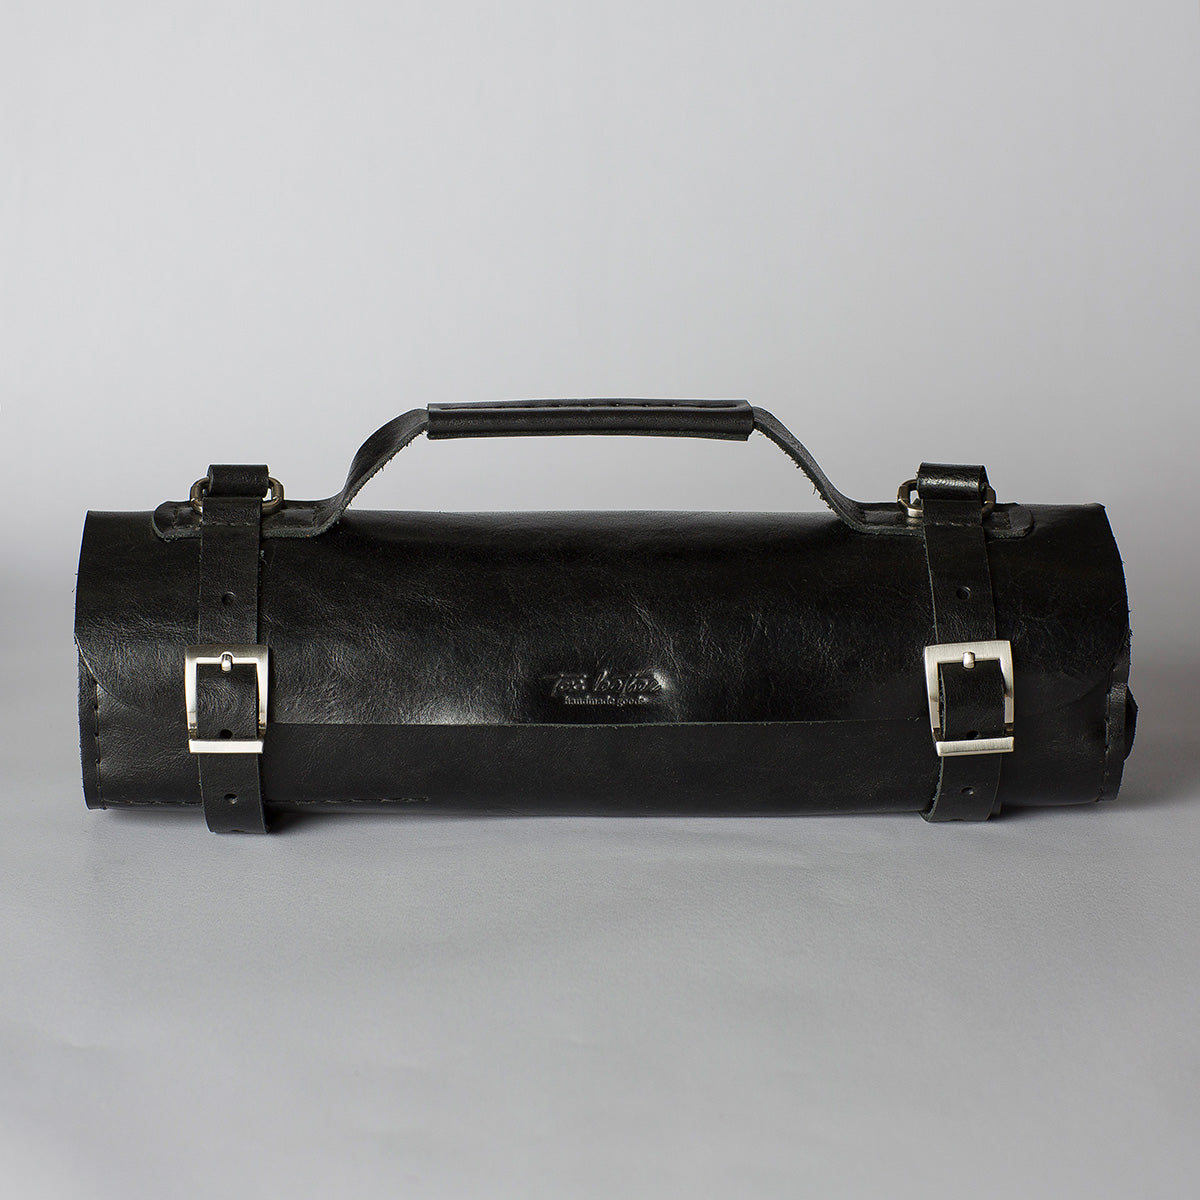 Knife-roll bag